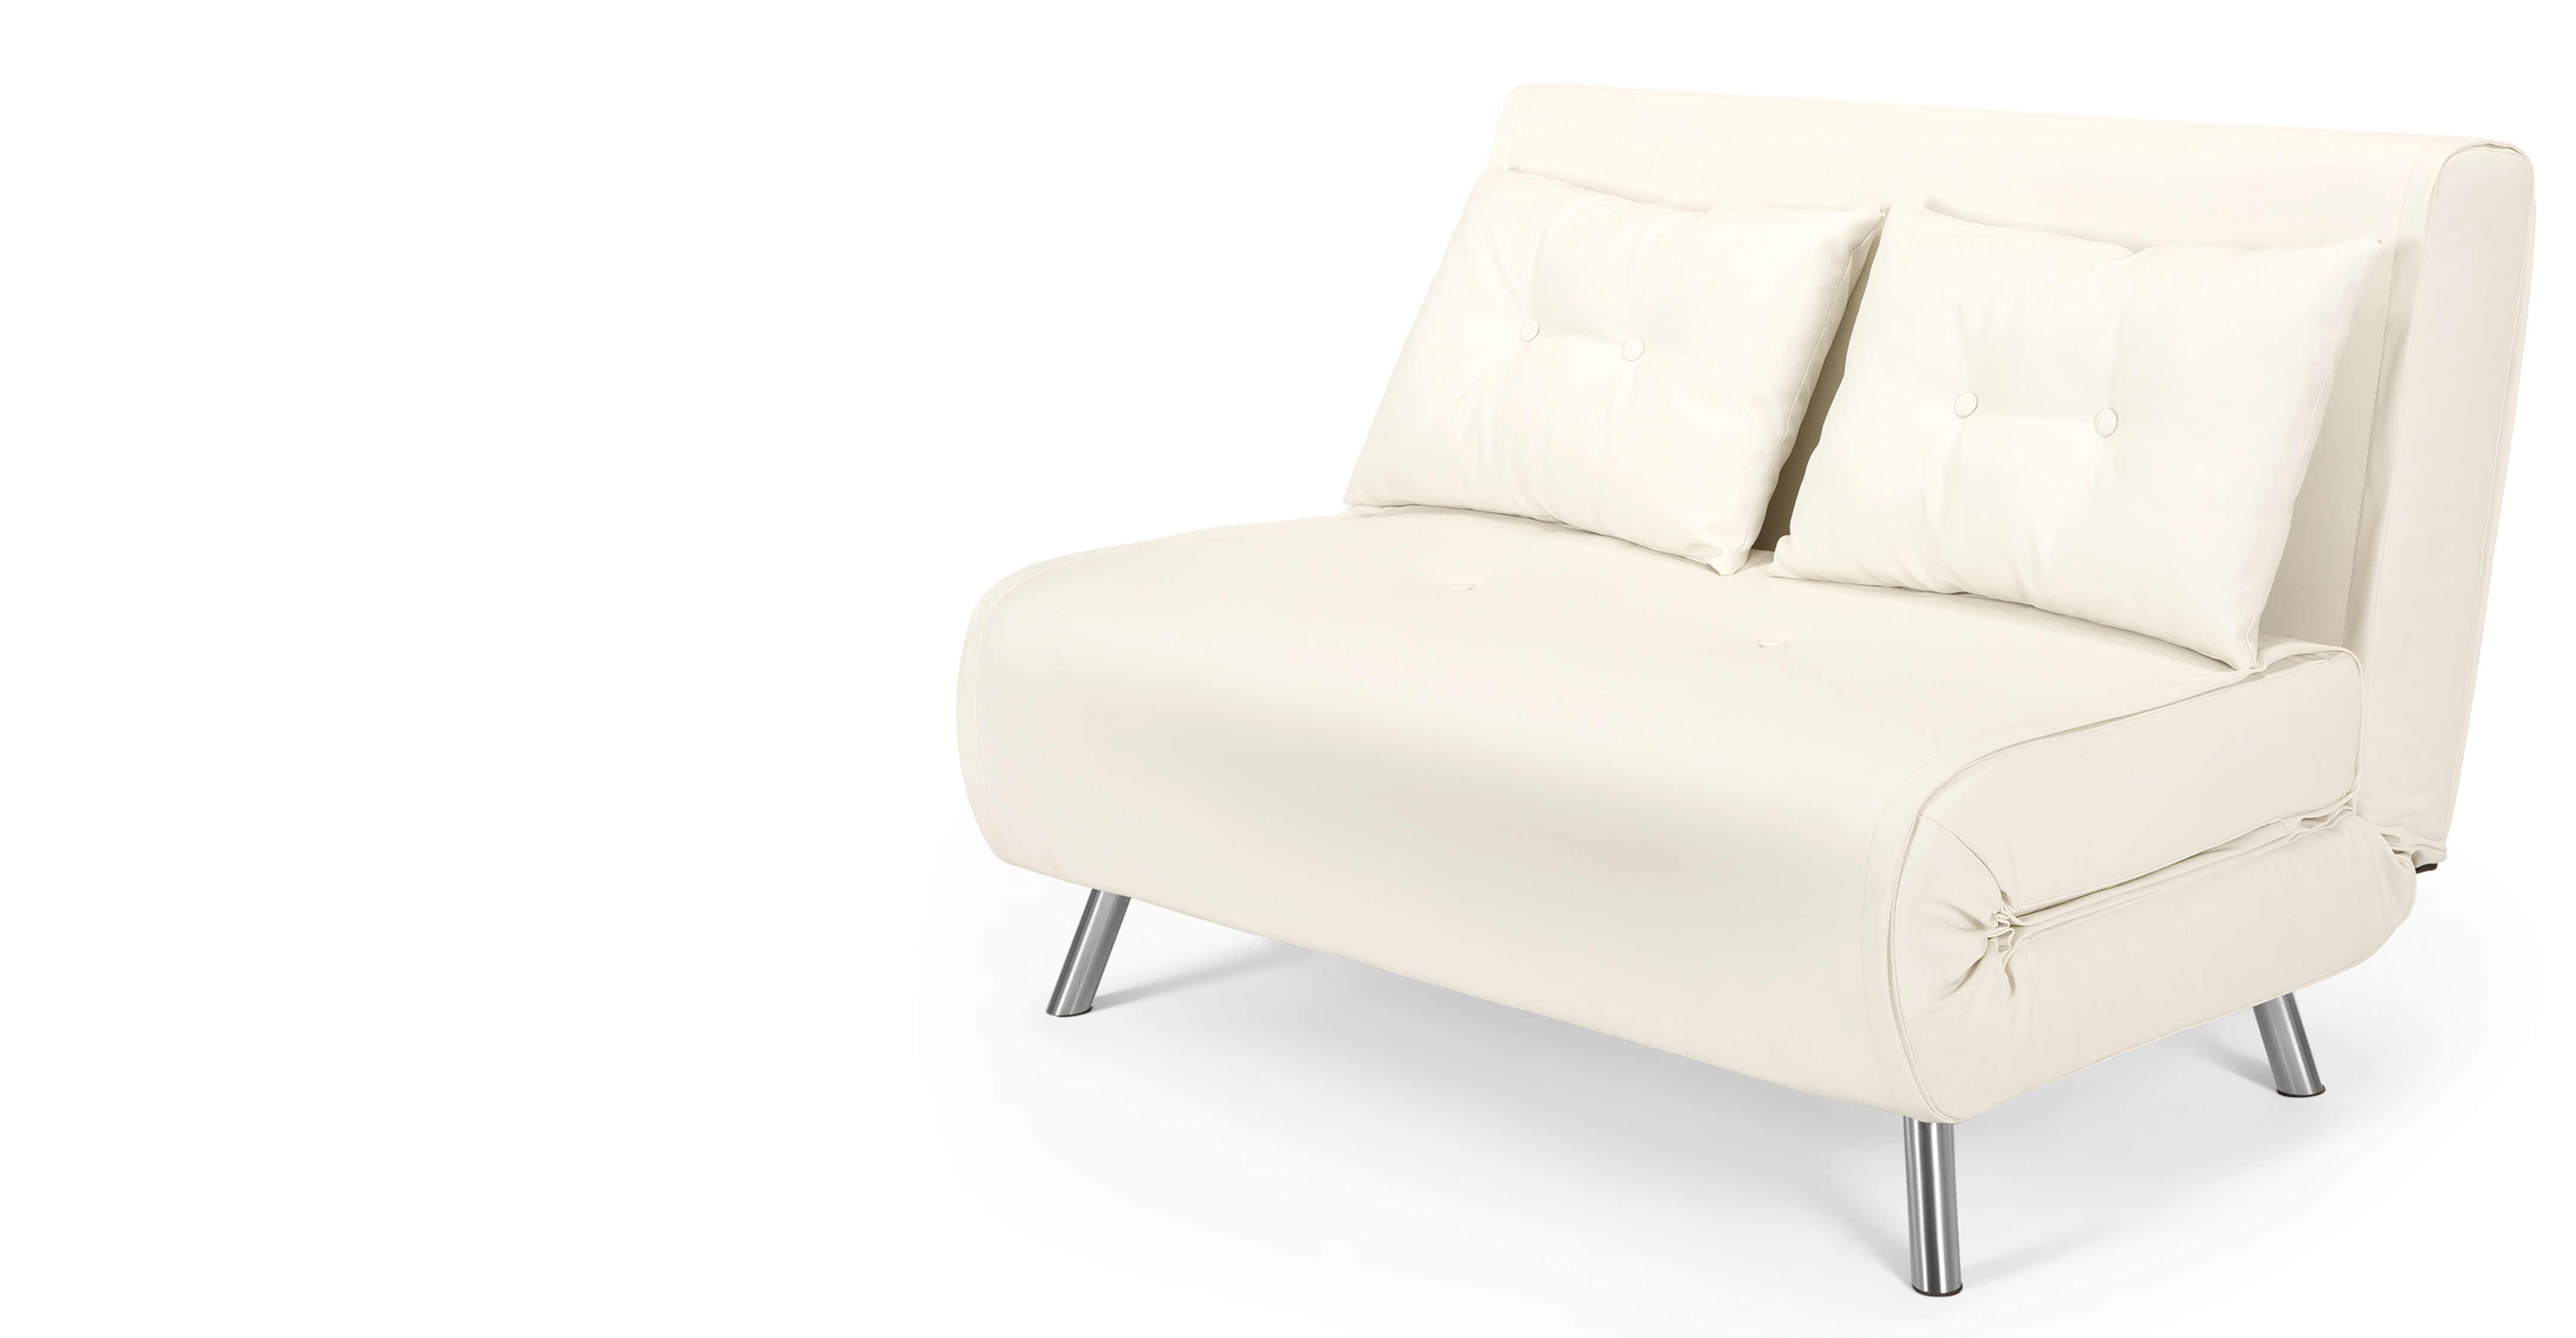 Haru small sofa bed in ibis cream Couches bed